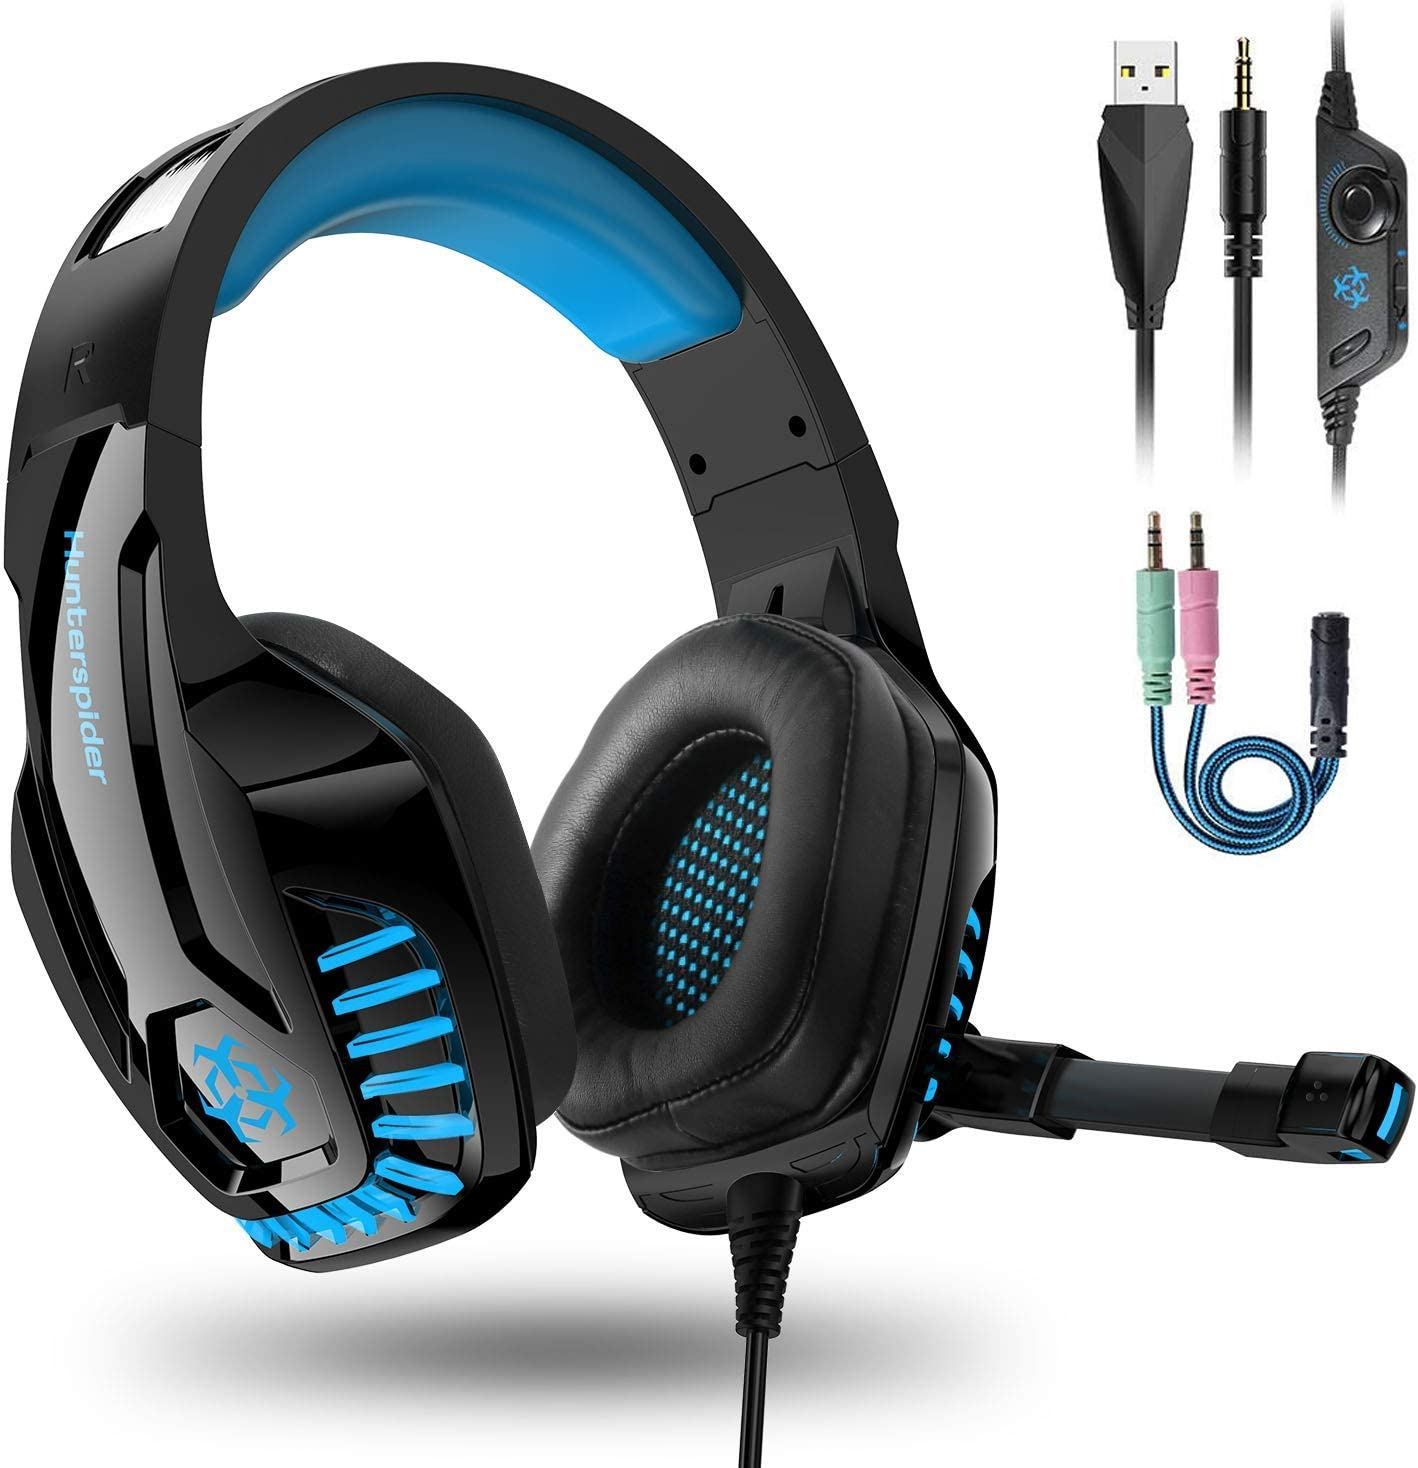 Igrome Auriculares Gaming PS4,Cascos Gaming con Micrófono de Mac Estéreo Cascos Gaming con 3.5mm Jack Luz LED Bajo Ruido Auriculares Gaming Compatible con PS4/PC/Mac/Xbox One/Nintendo Switch